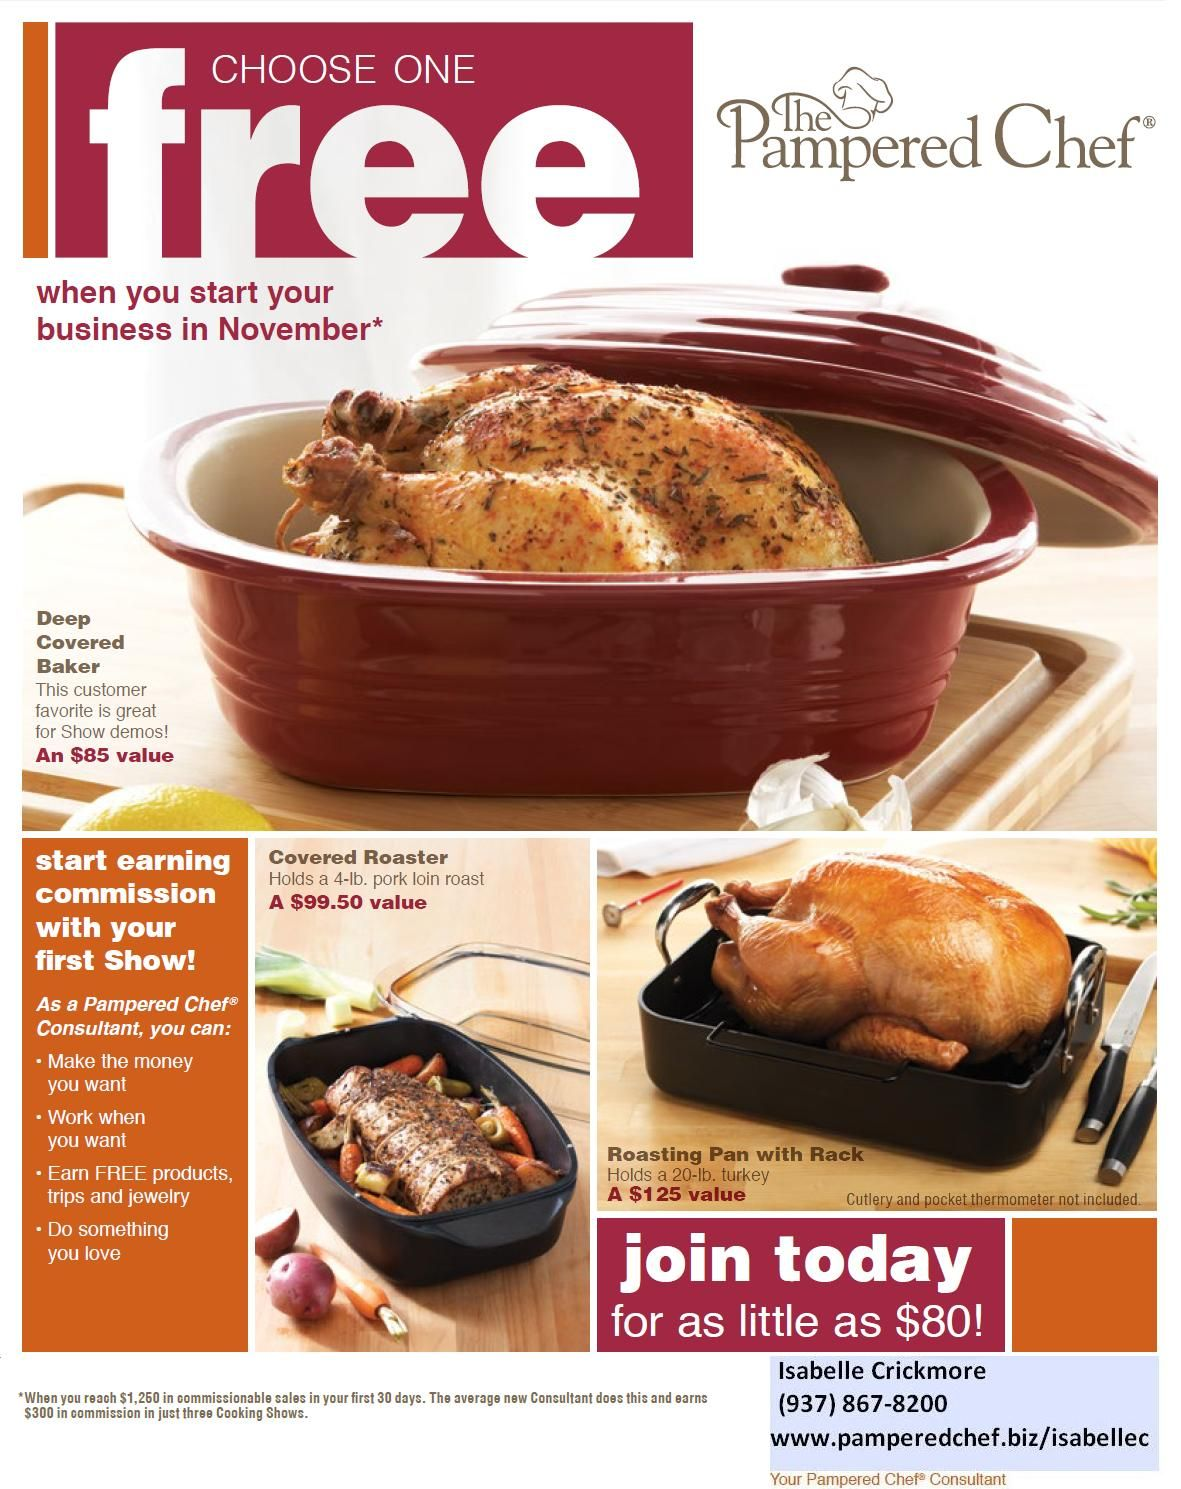 FREE Deep Covered Baker, Covered Roaster or Roasting Pan with Rack!!! #ThePamperedChef